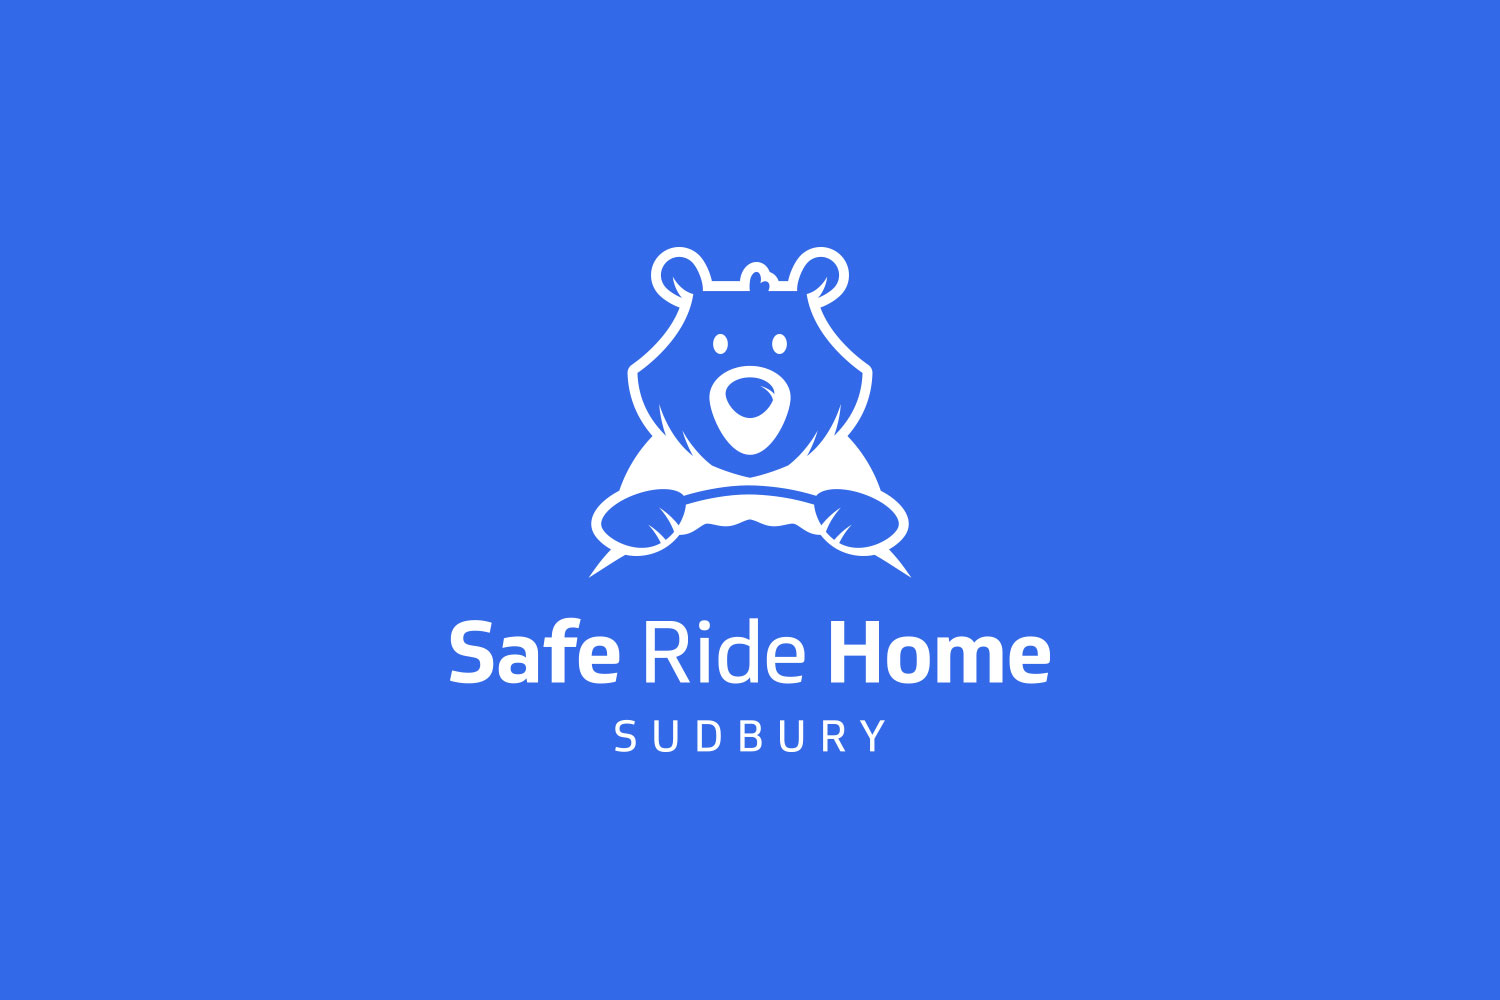 Safe Ride Home Sudbury